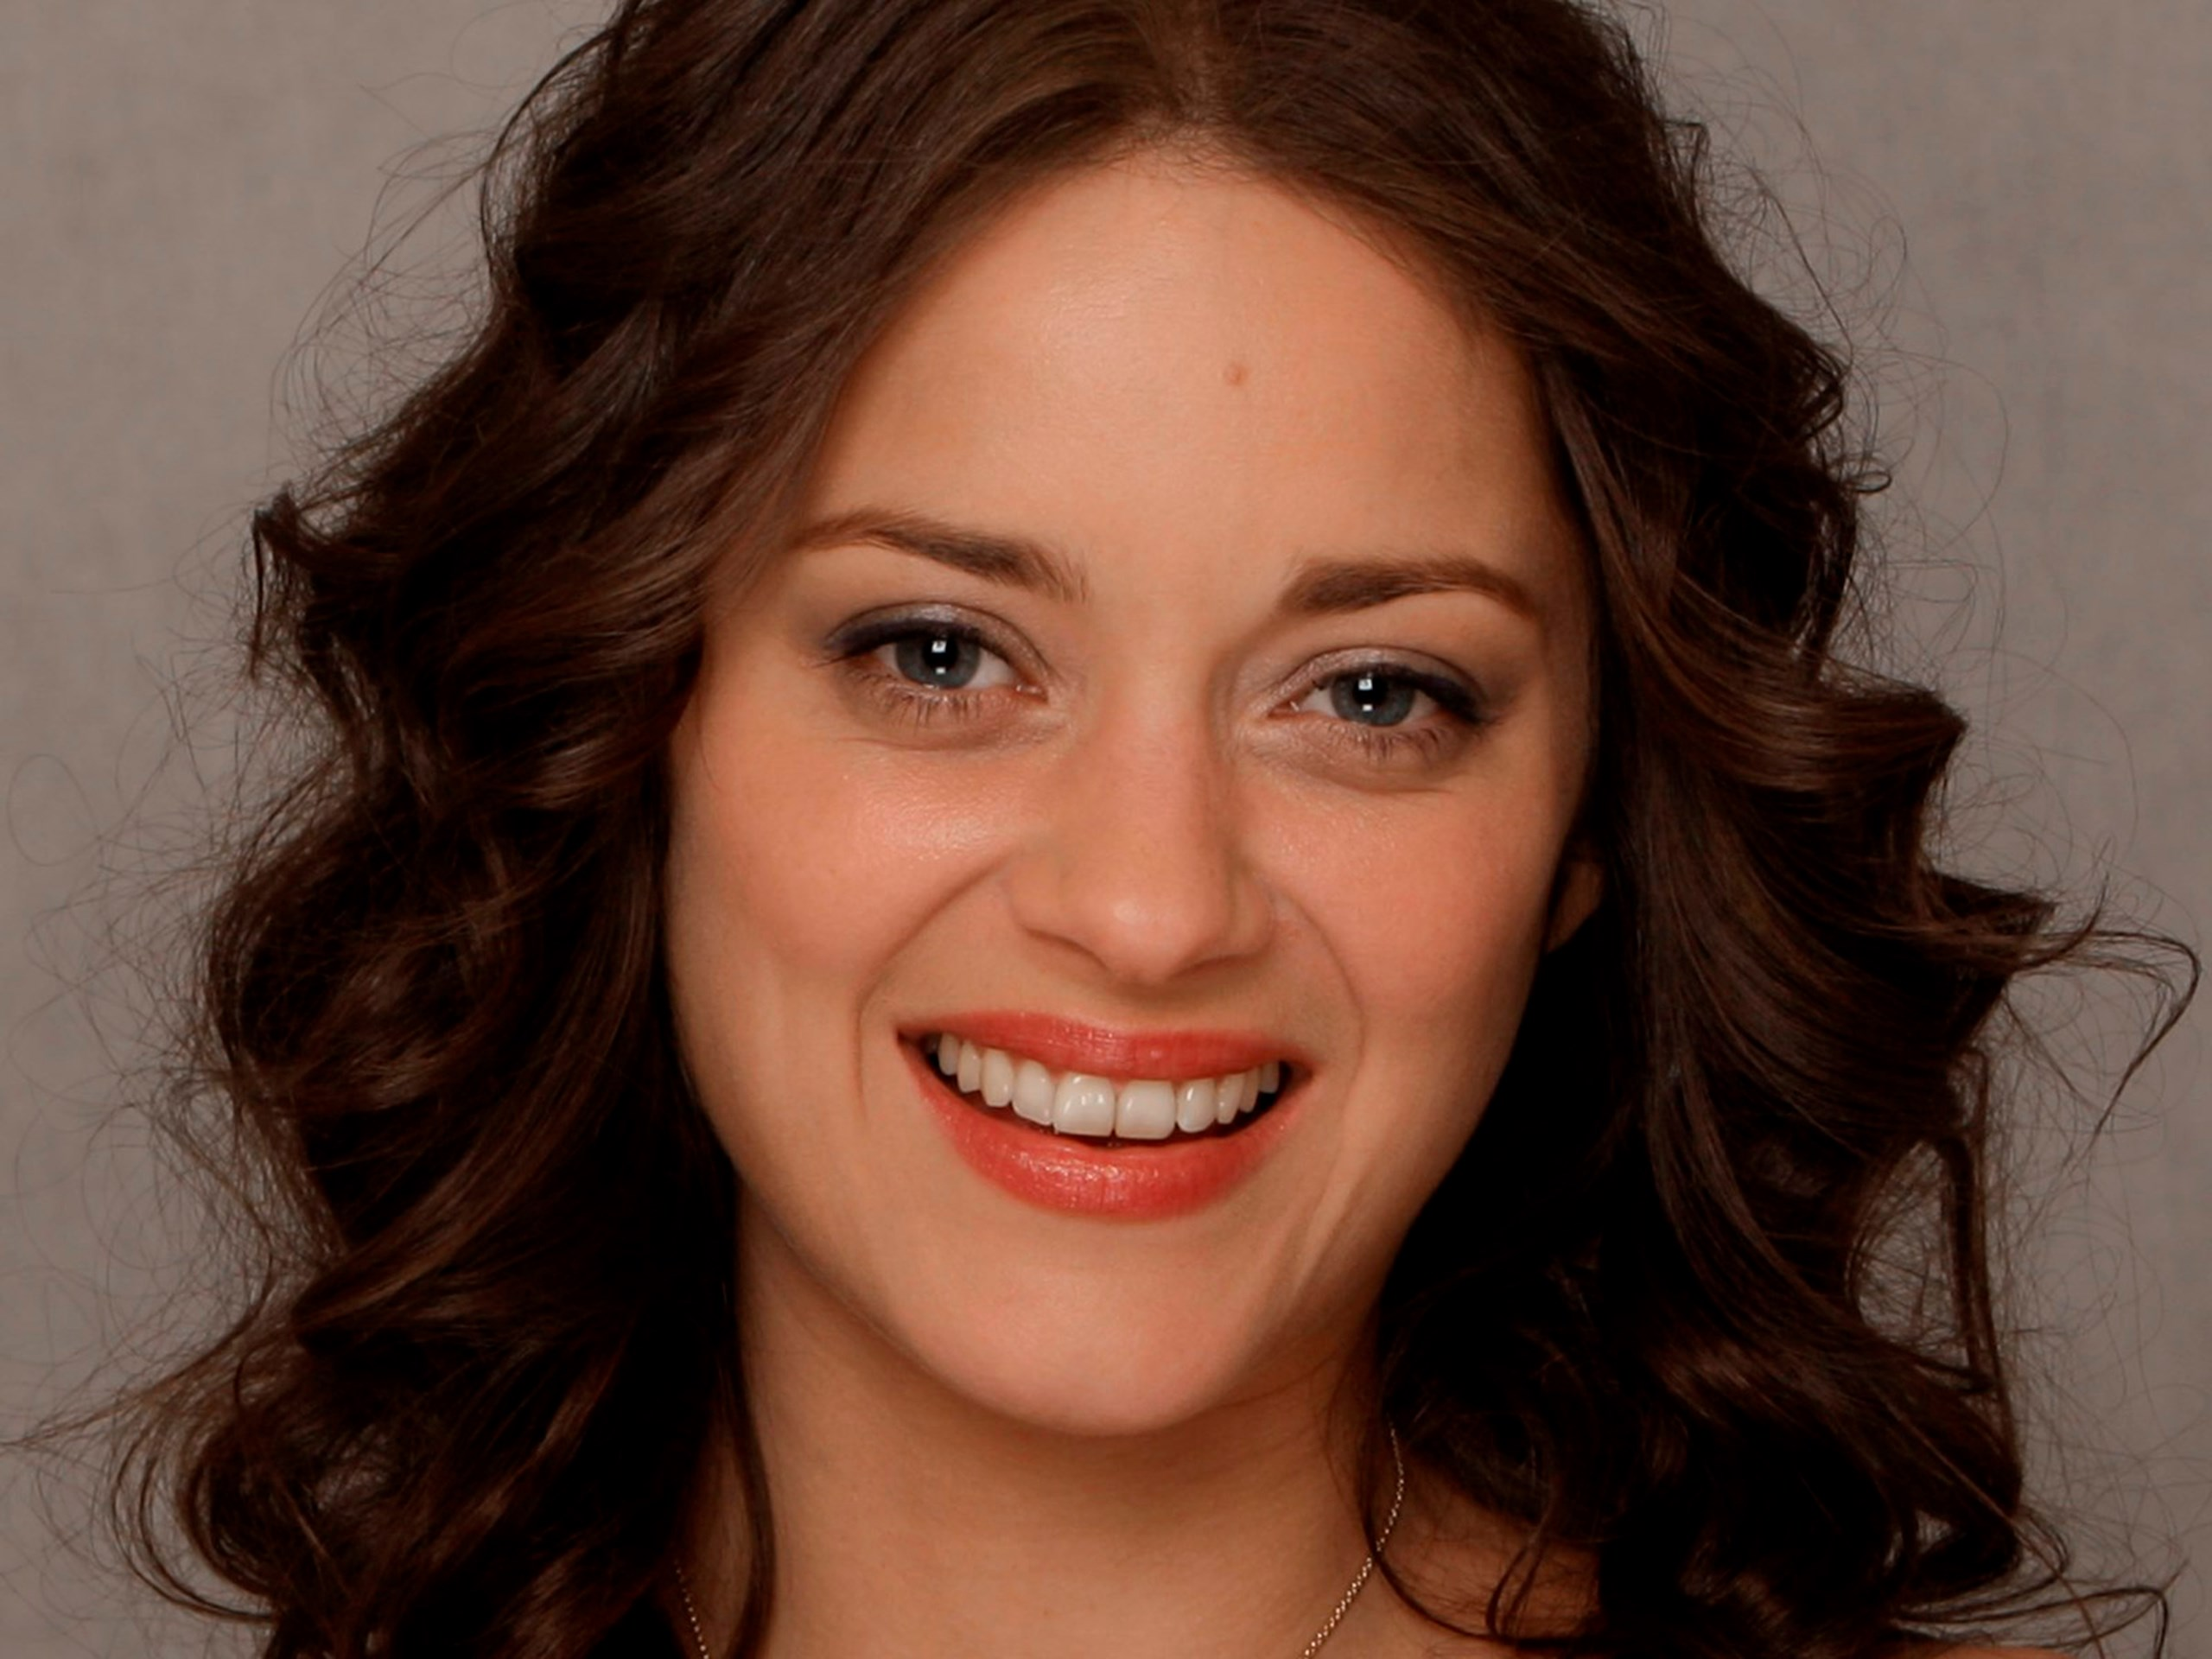 Marion Cotillard latest pics - HIGH RESOLUTION PICTURES